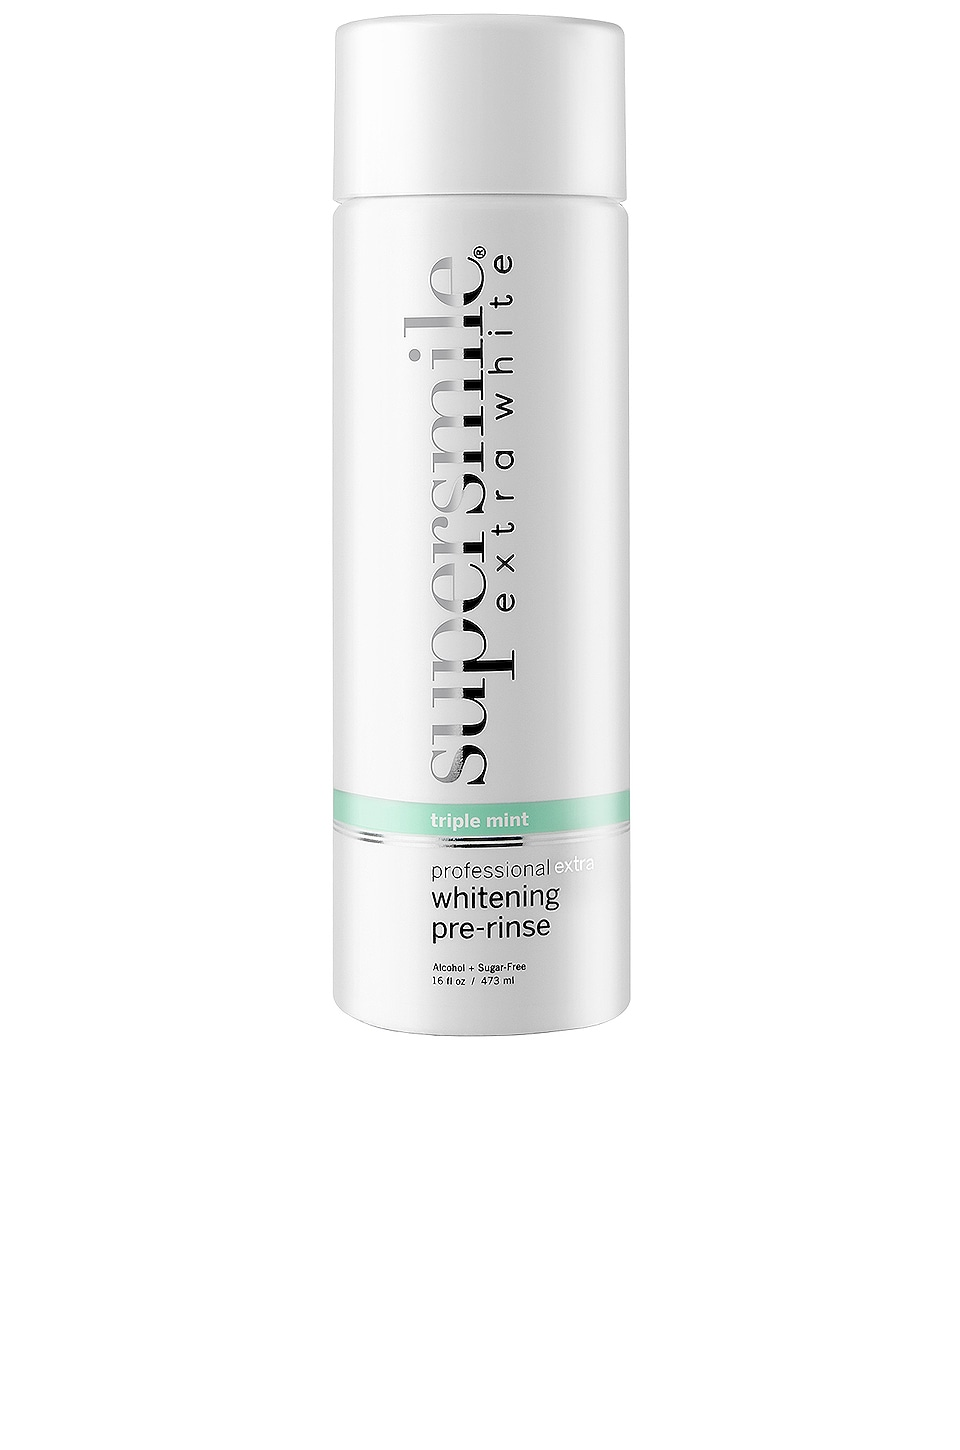 supersmile Extra White Whitening Pre-Rinse in Triple Mint